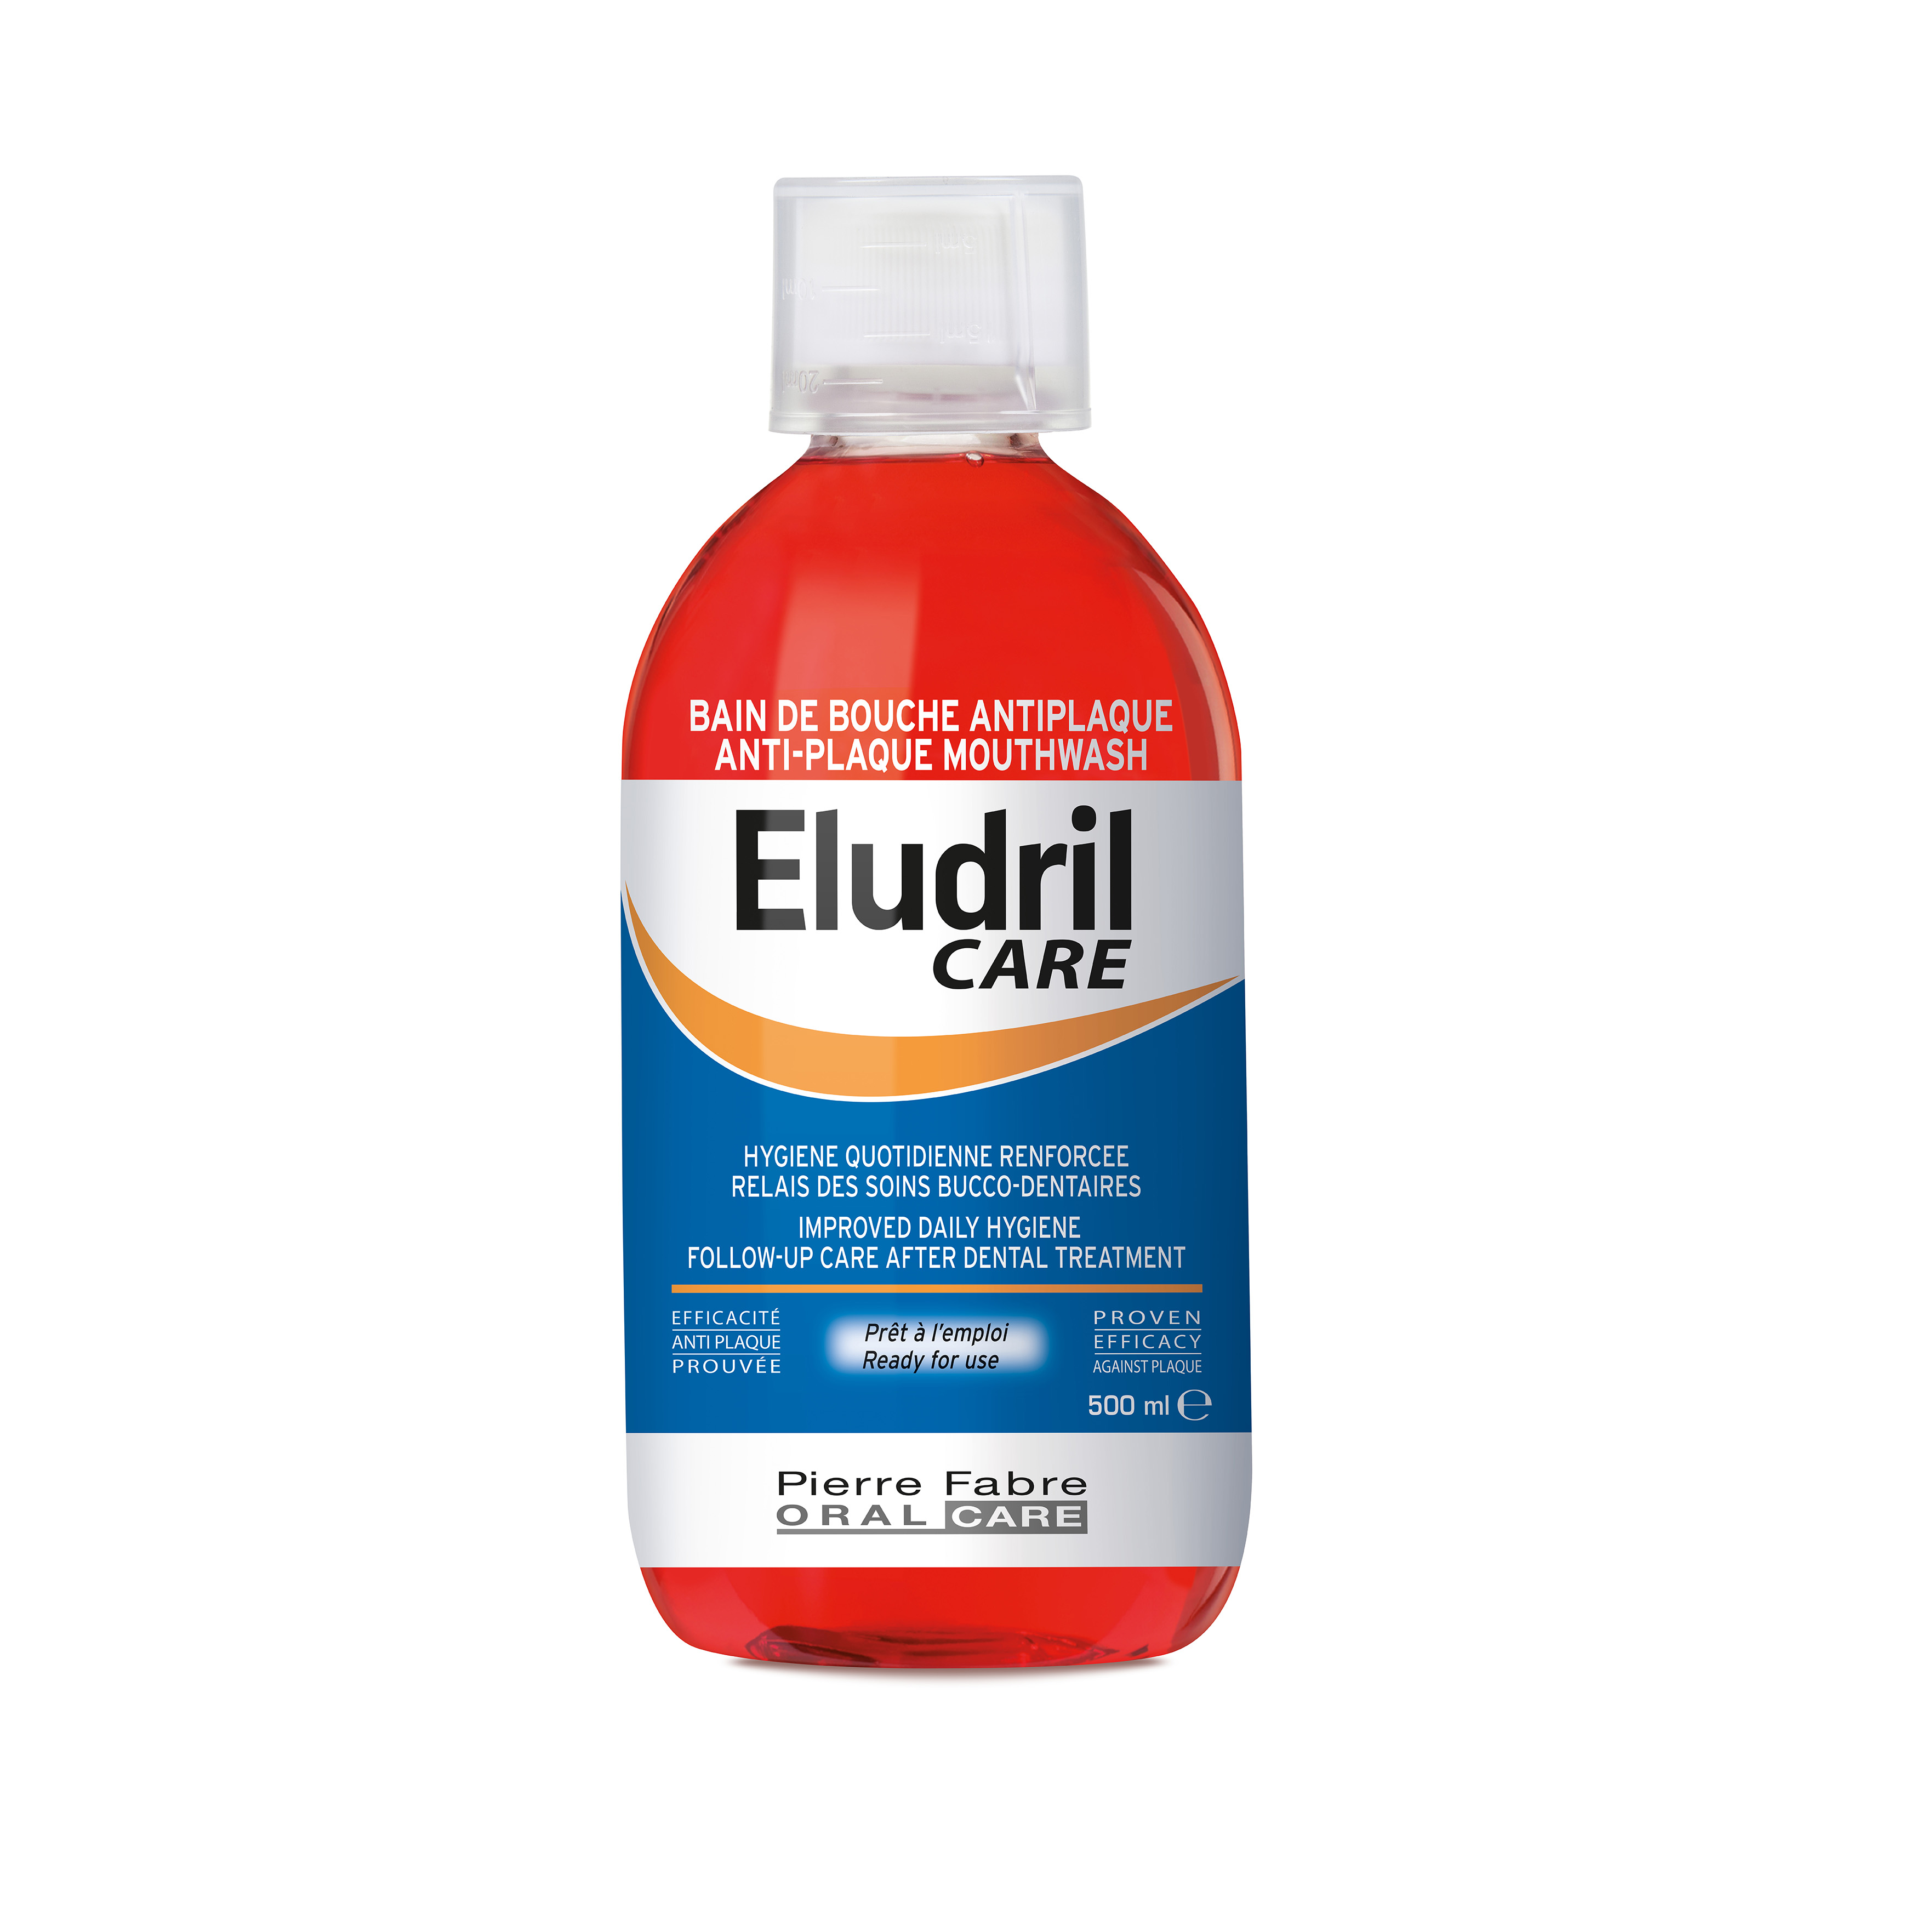 Eludril Care apa de gura 500ml